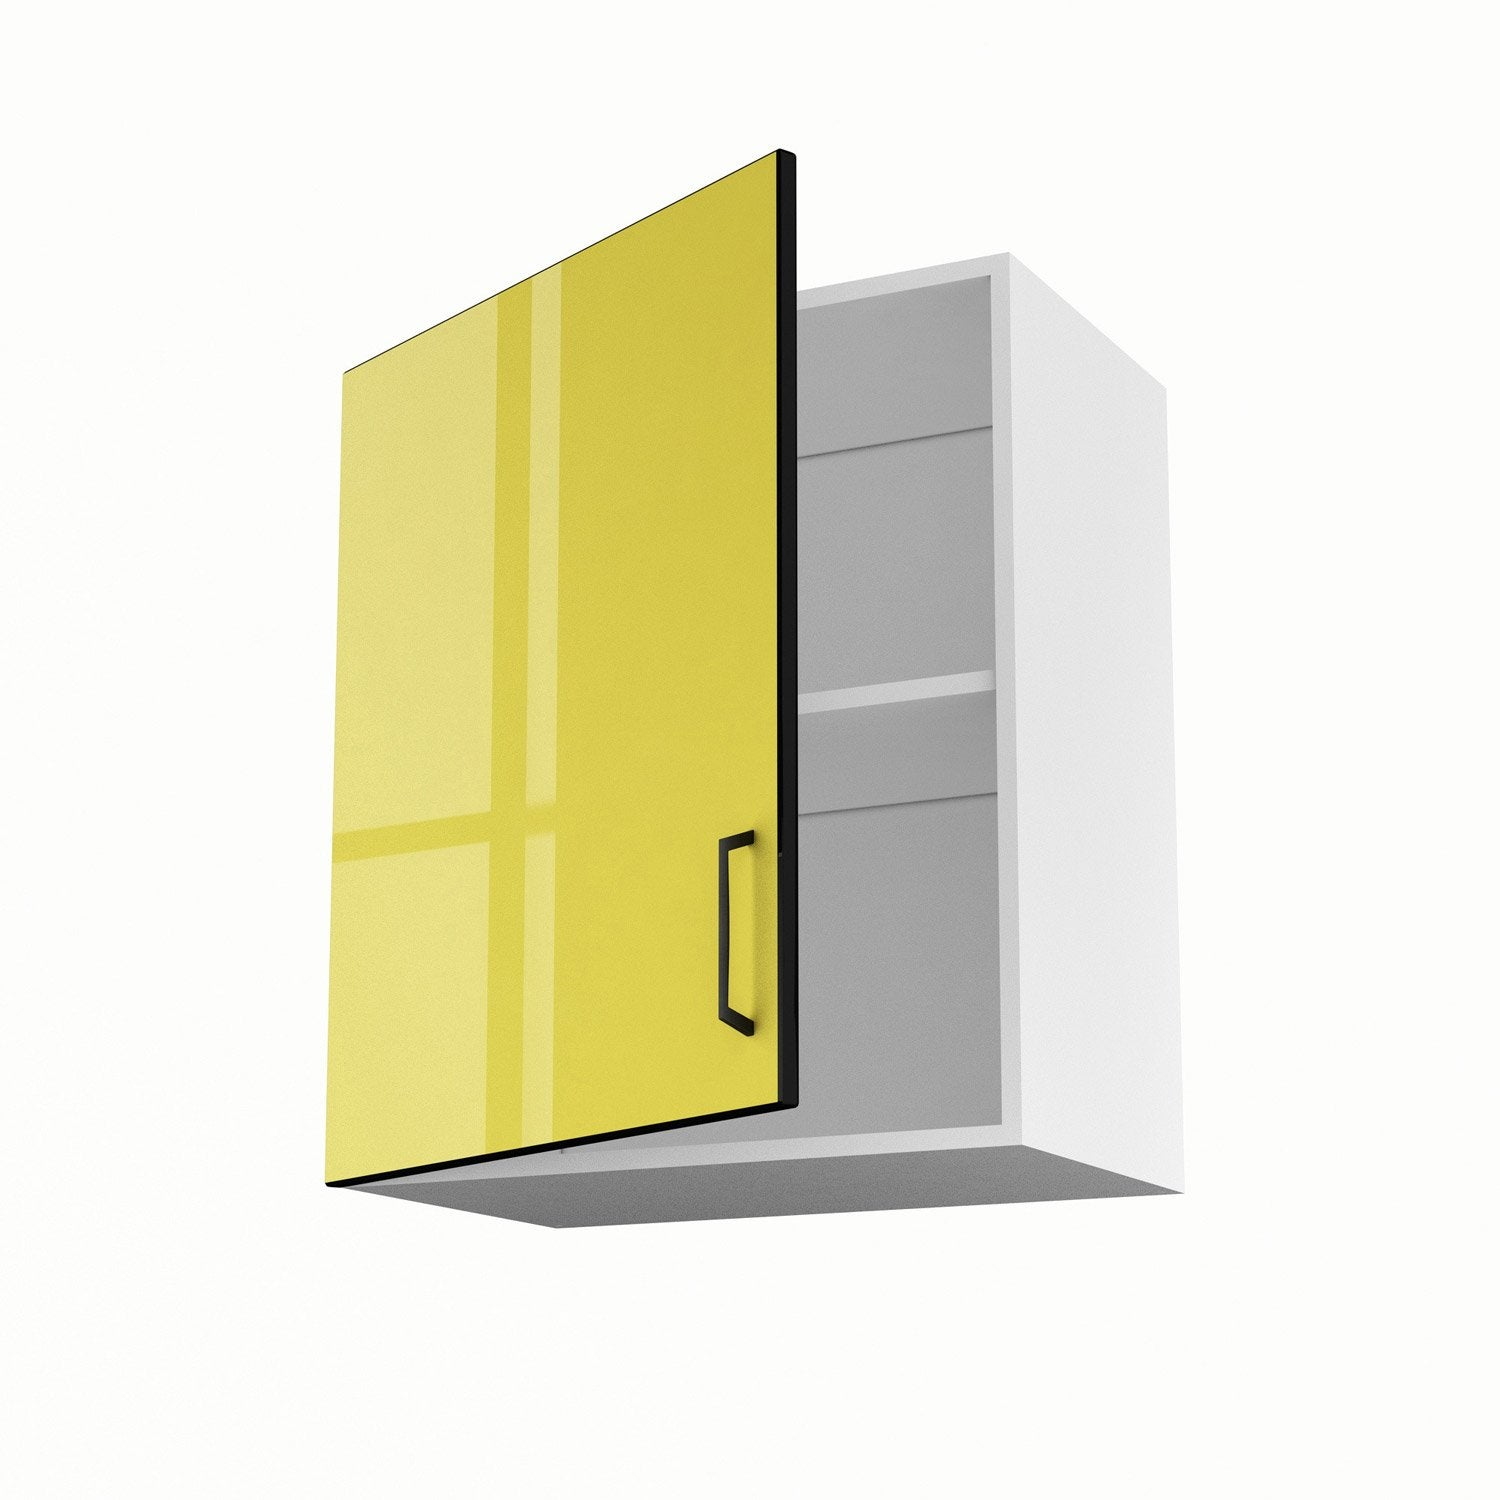 Meuble de cuisine haut jaune 1 porte pop h70xl60xp35 cm for Porte 60 x 30